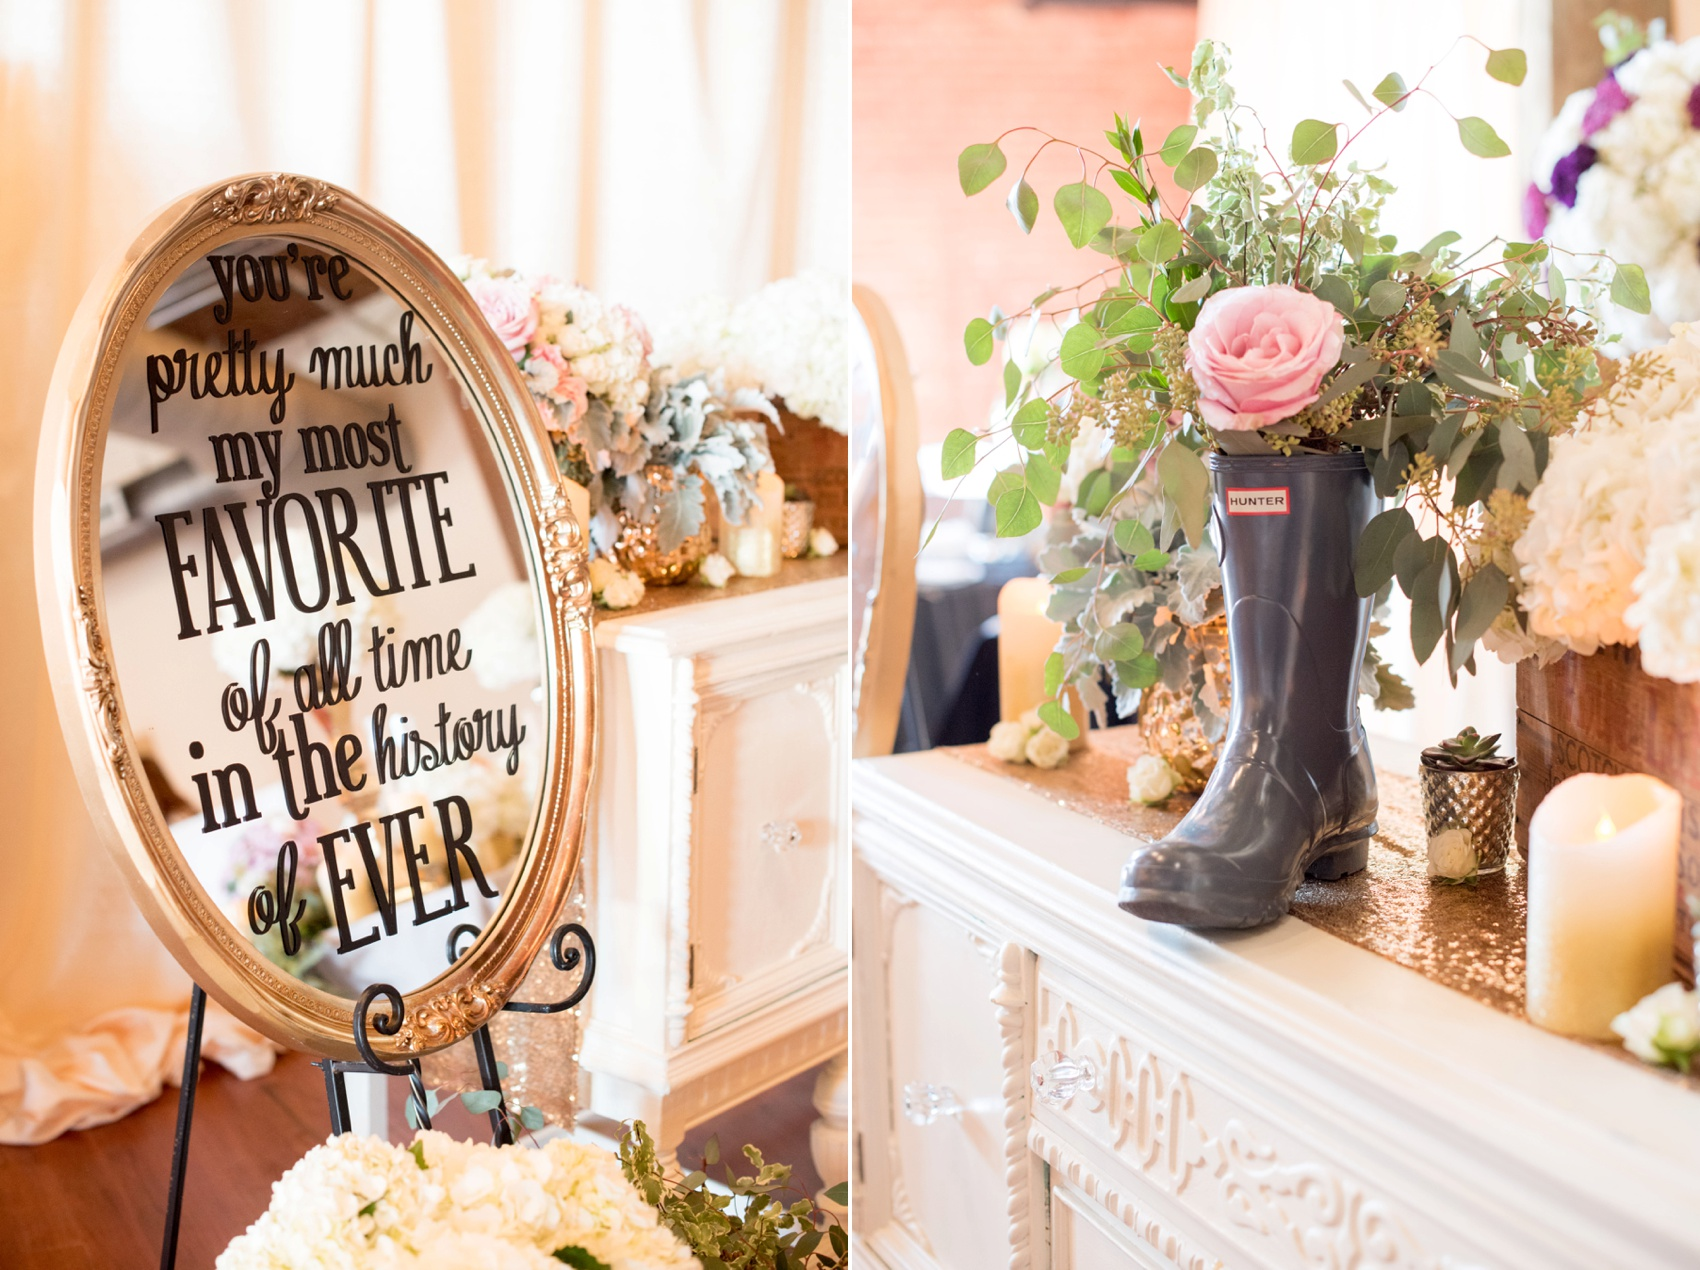 The Cloth Mill North Carolina wedding vendor showcase. Raleigh, Durham and Hillsborough vendors at a rustic, modern location. Abba Events table display with a wellie Hunter boot floral arrangement and oval mirror sign with custom quote.